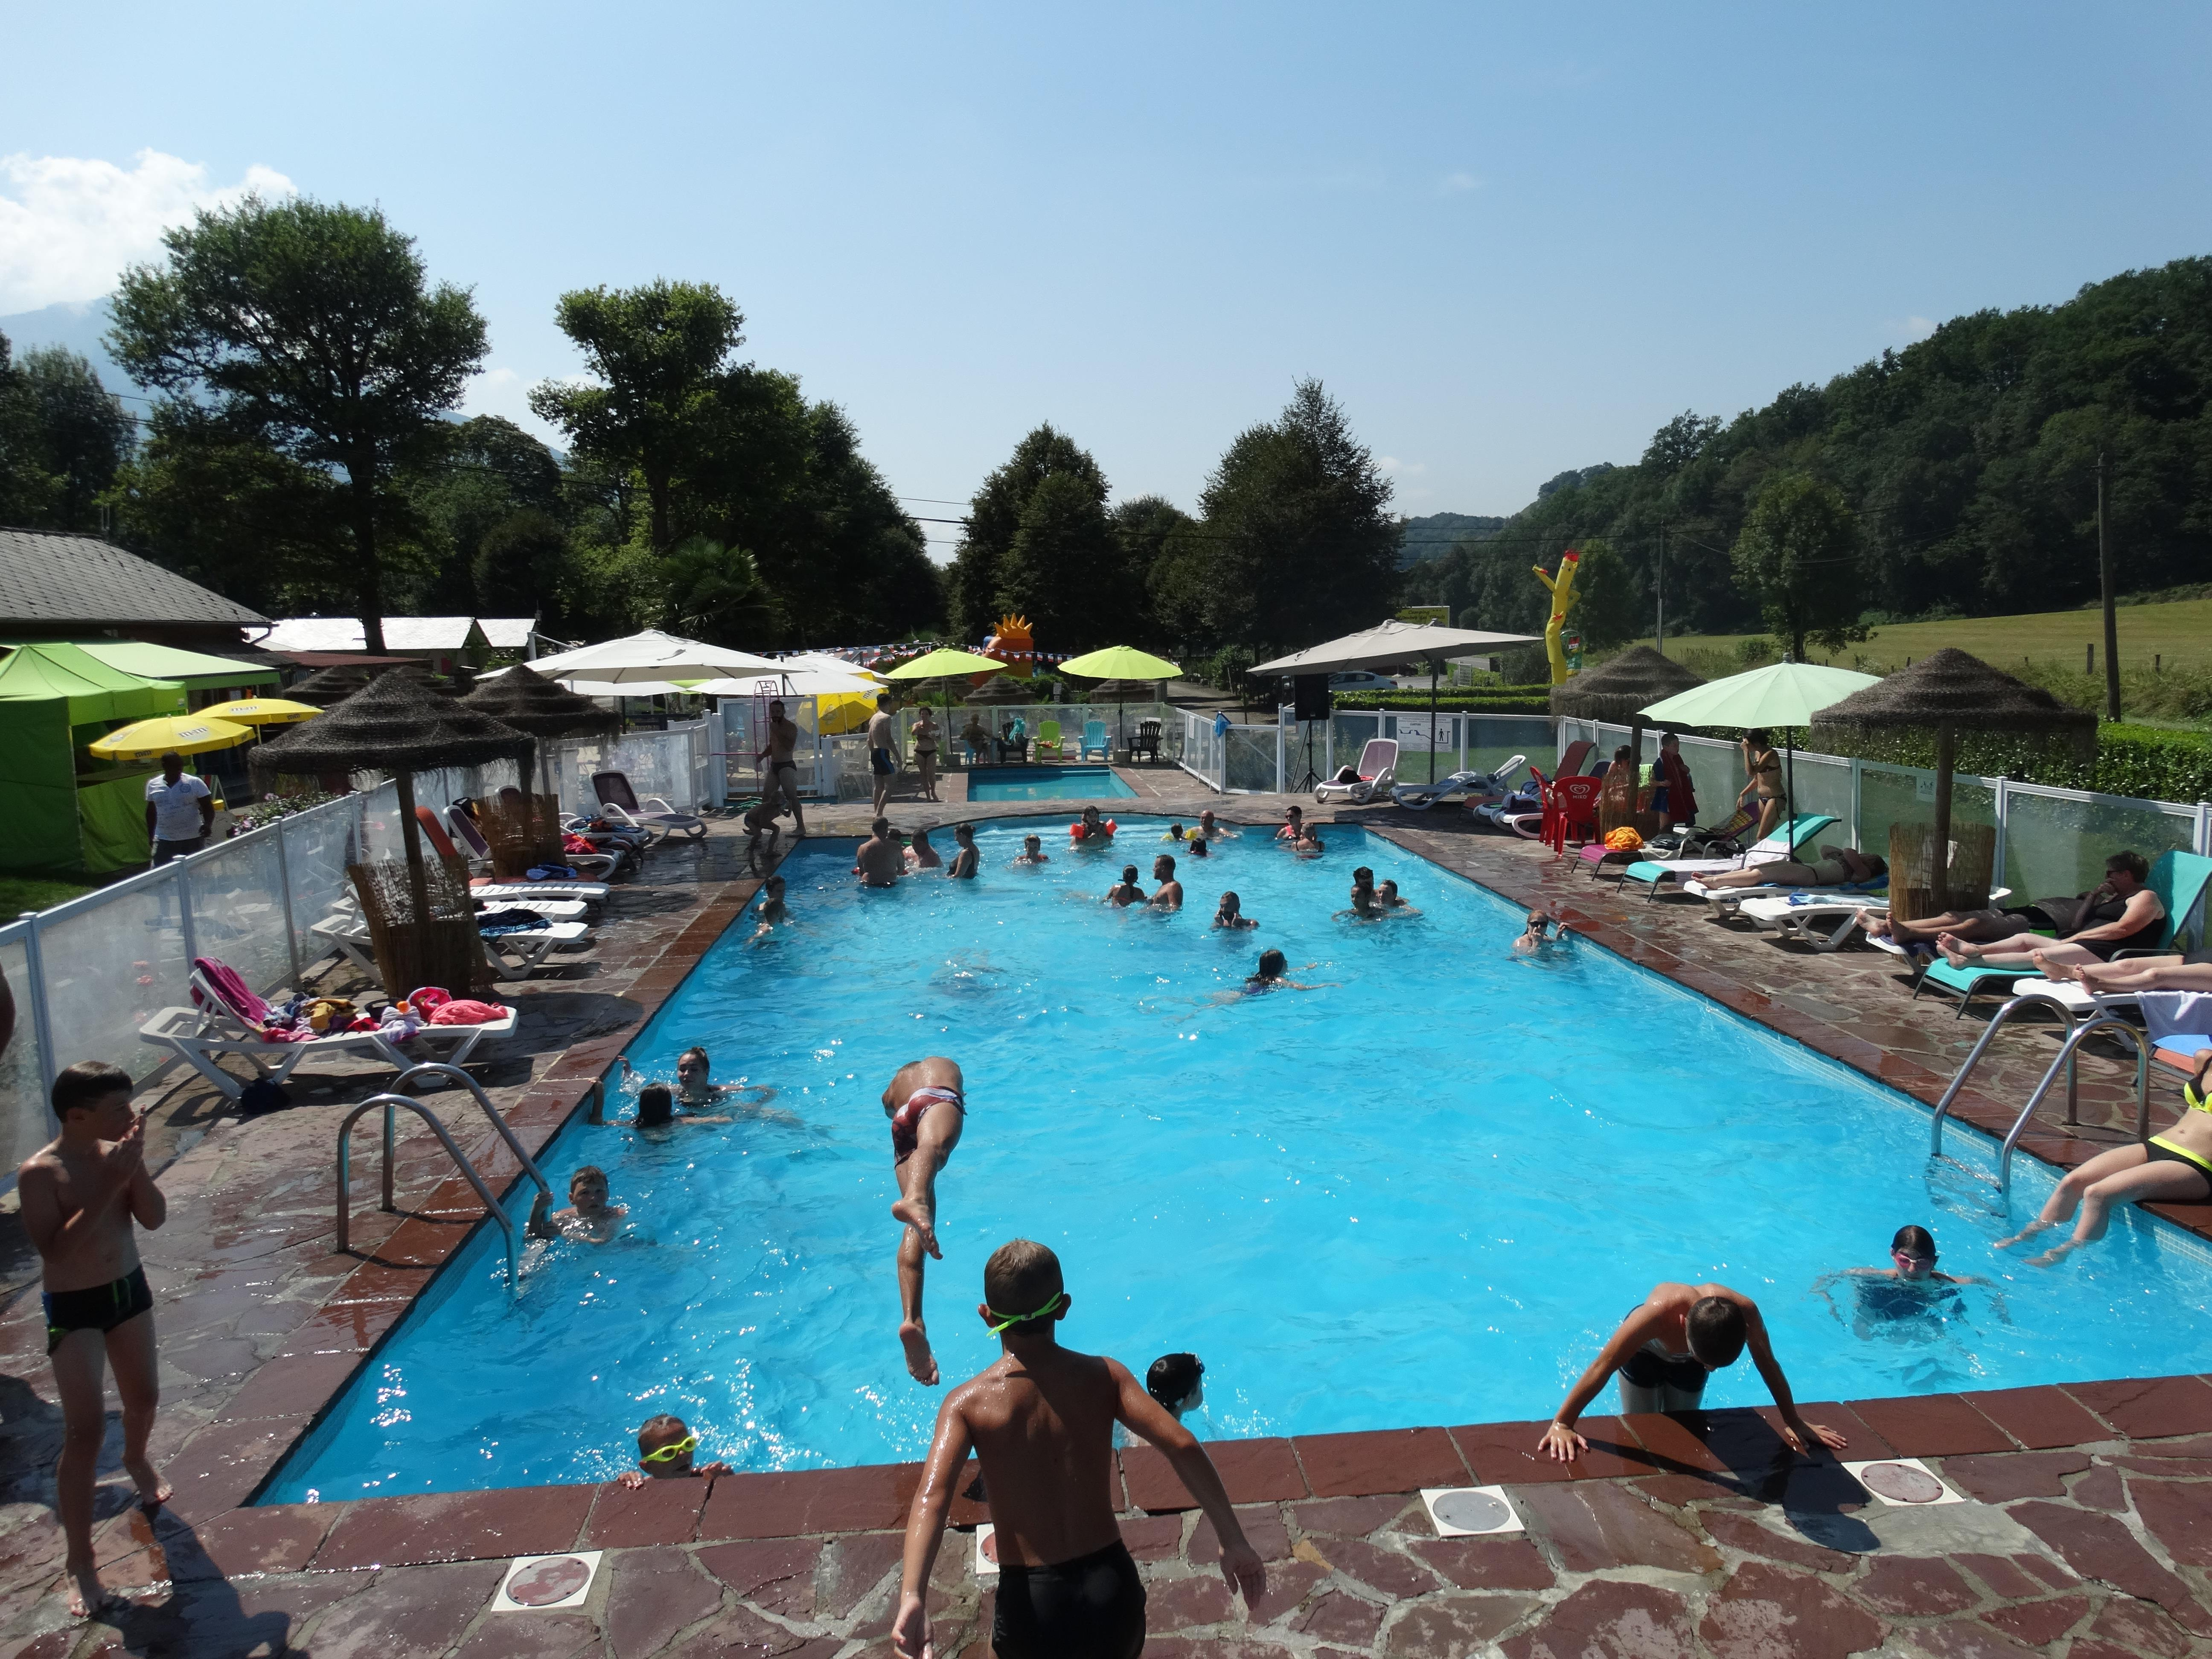 Bathing Camping A L'ombre Des Tilleuls - Peyrouse